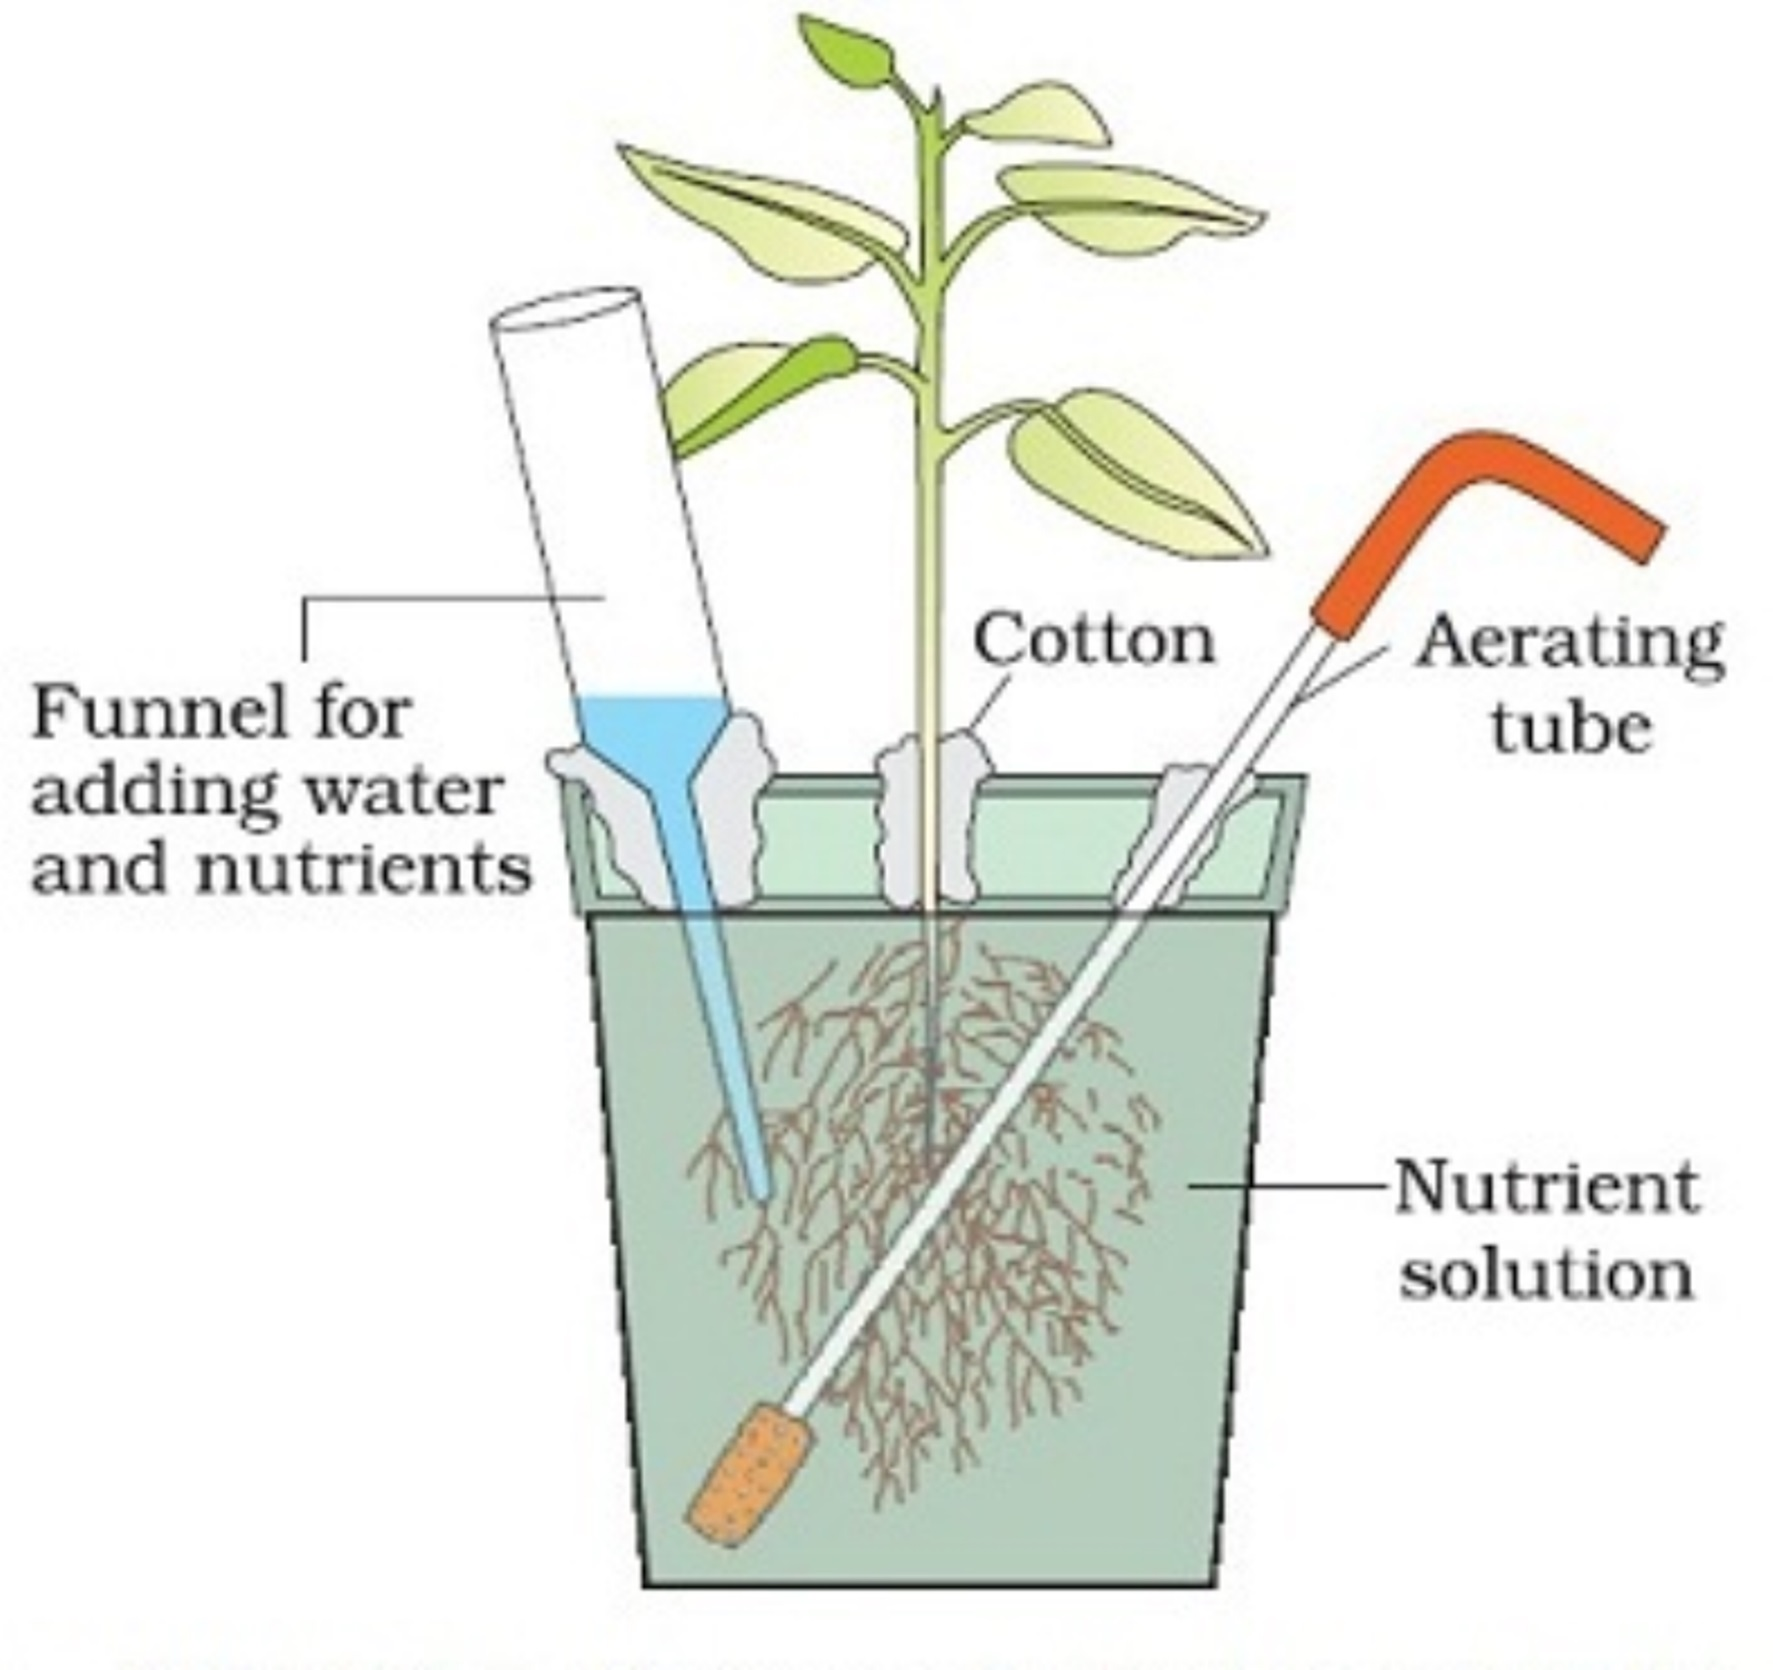 mineral requirements of plants With continuously flowing solutions have also been developed in order to grow plants with constant properties, the importance of quantifying the nutrients to be supplied in relation to plant requirements has been emphasized (ingestad 1982 ) since the amounts of nutrients required per unit of time increase with increasing.